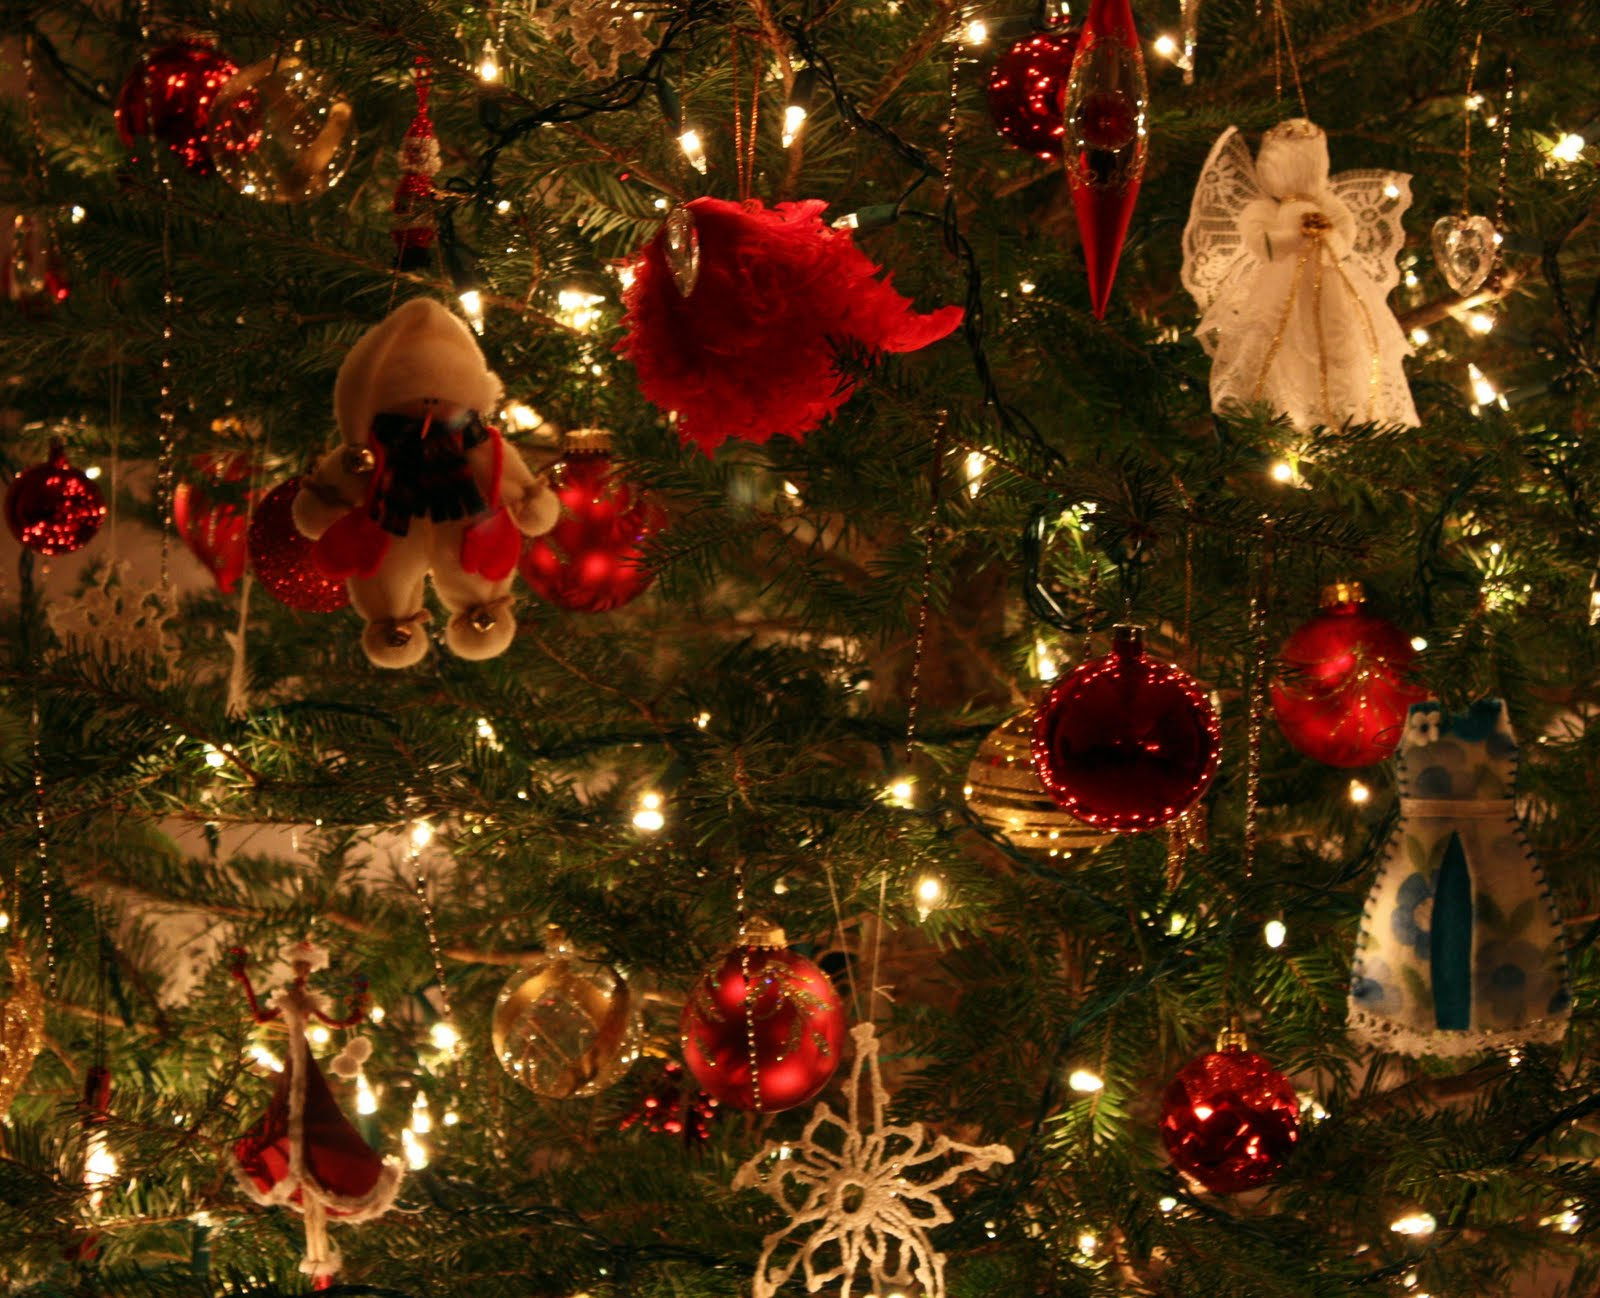 Carol Steel: Christmas Tree Decorations